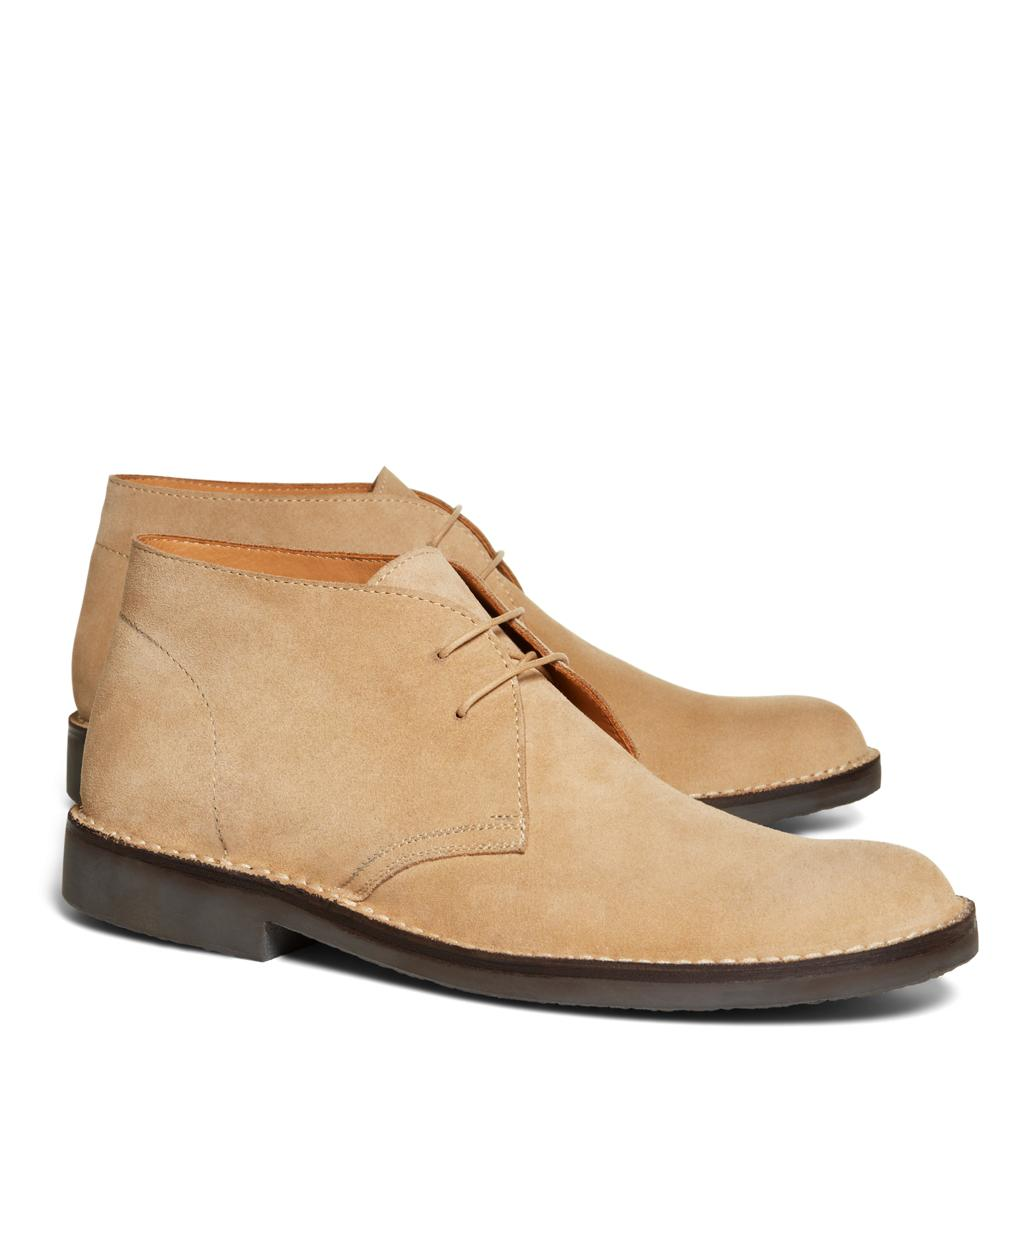 1edaa7a3d0c Lyst - Brooks Brothers Field Chukka Boots in Natural for Men